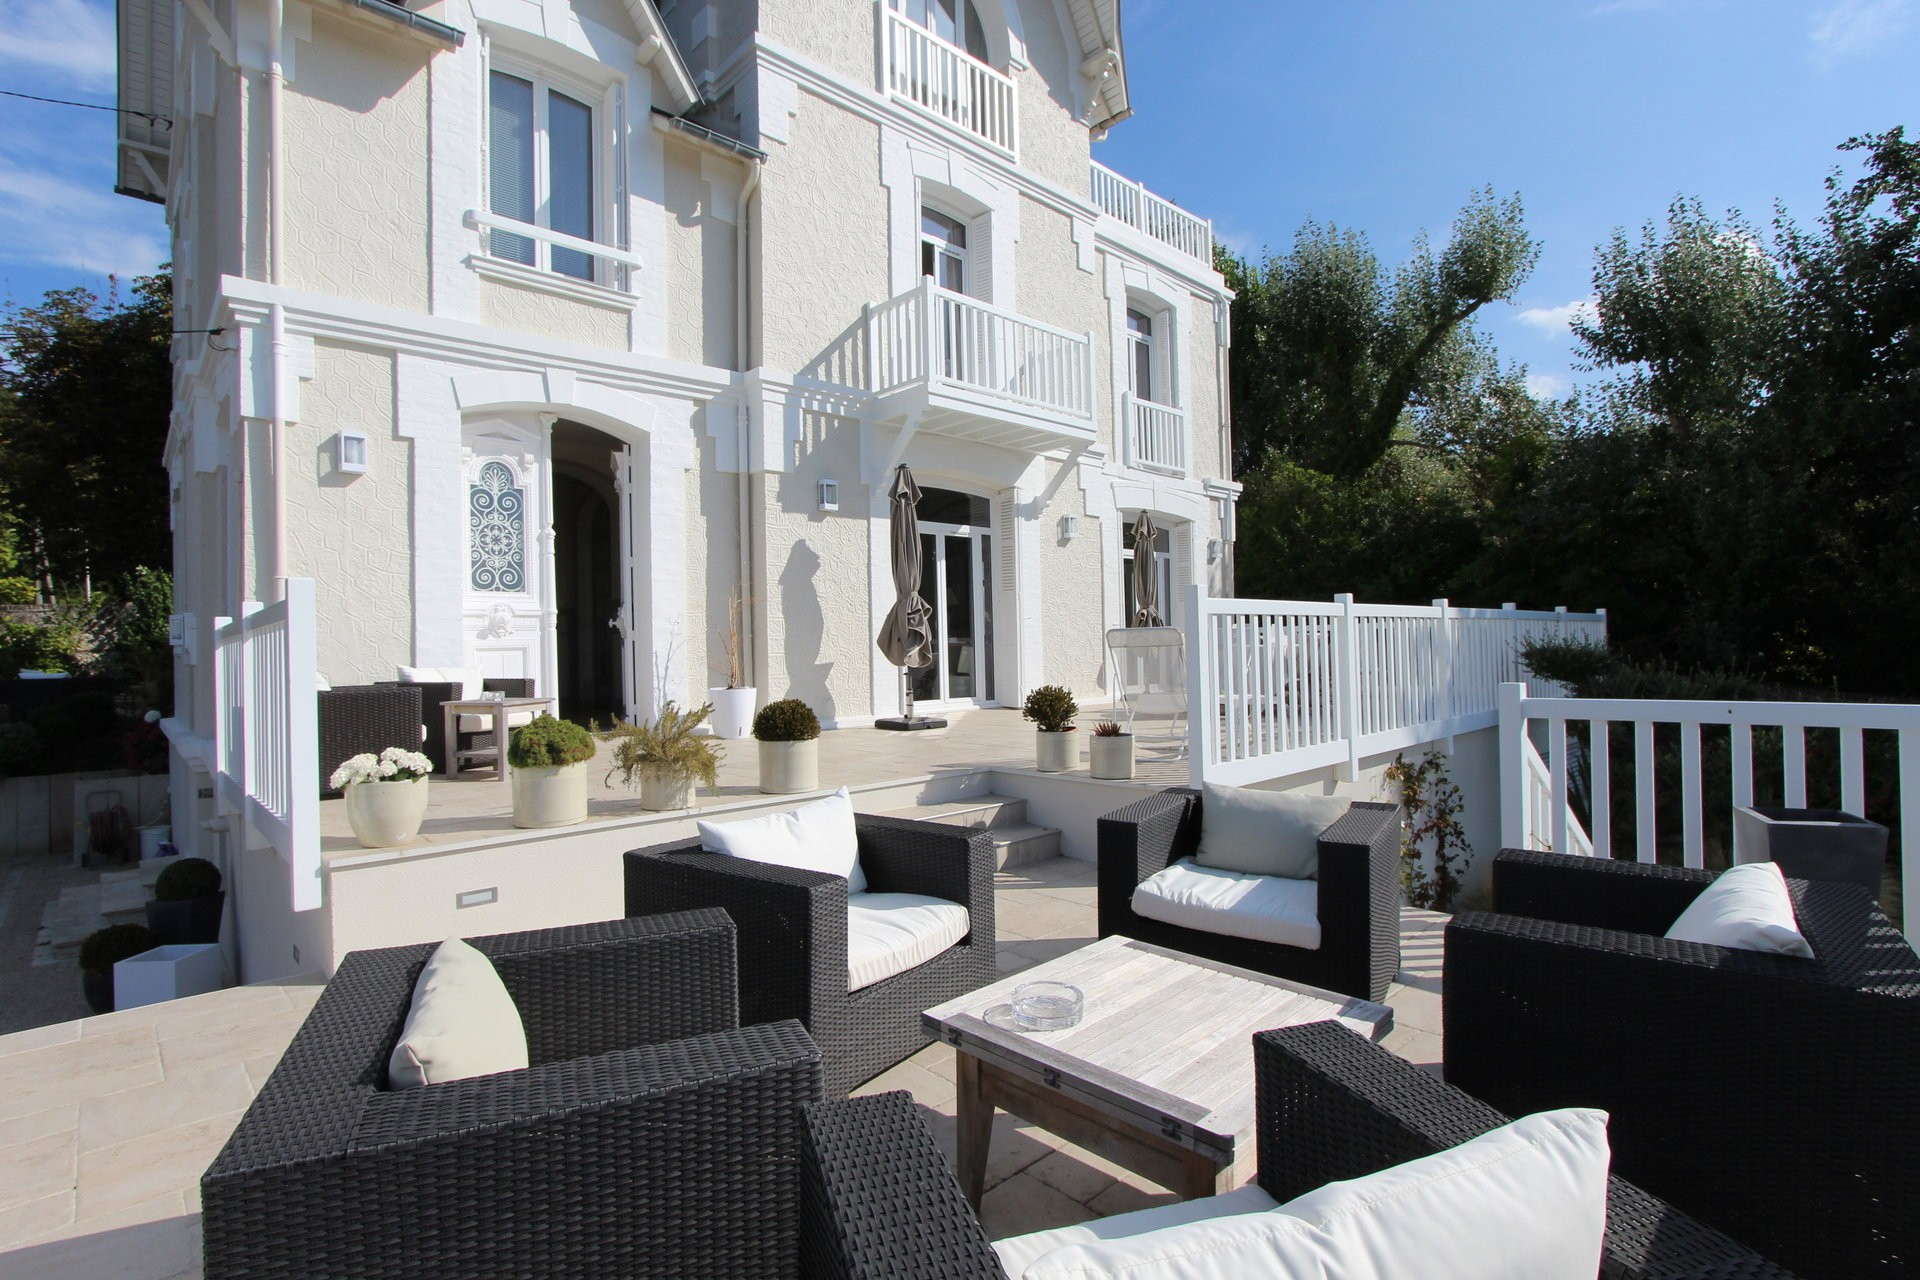 beautiful-fully-renovated-anglo-norman-villa-for-sale-trouville-sur-mer-beautiful-terraces-sea-garden-views-cellar-with-boiler-room-laundry-room